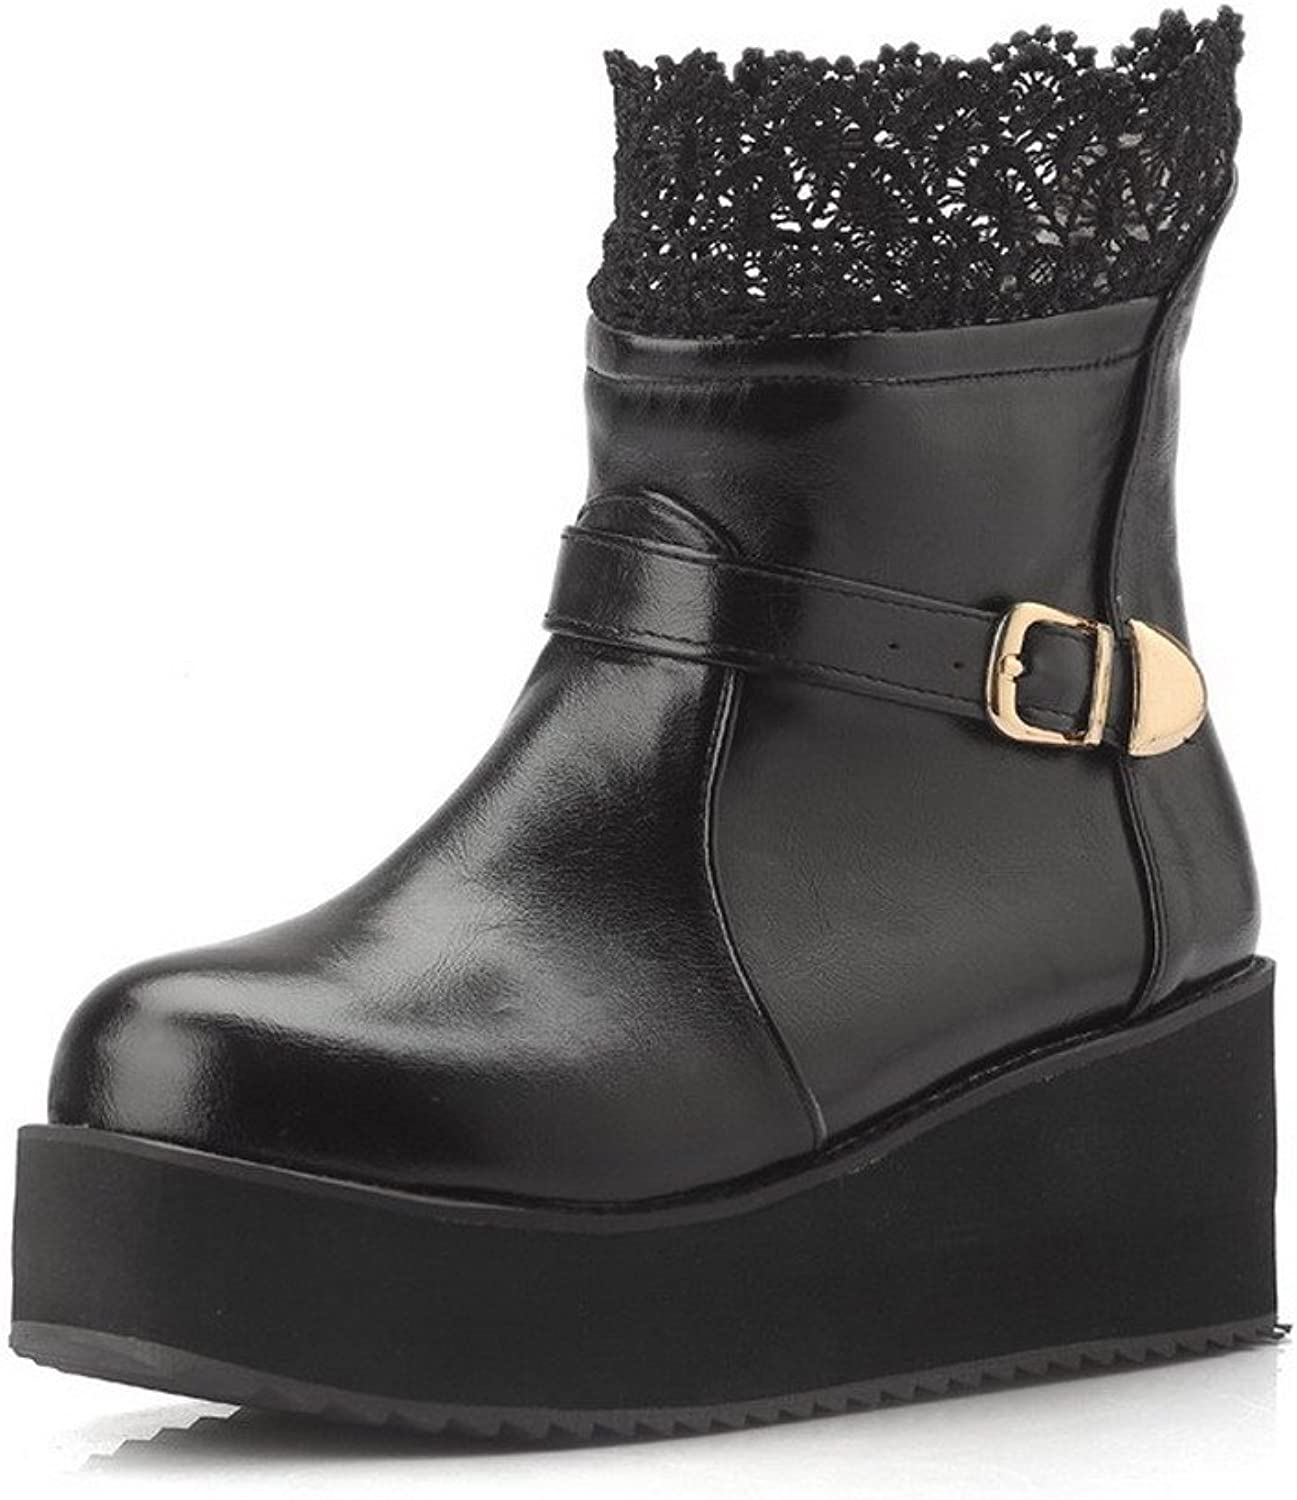 AllhqFashion Women's Solid Mid-top Blend Materials Round Closed Toe Boots